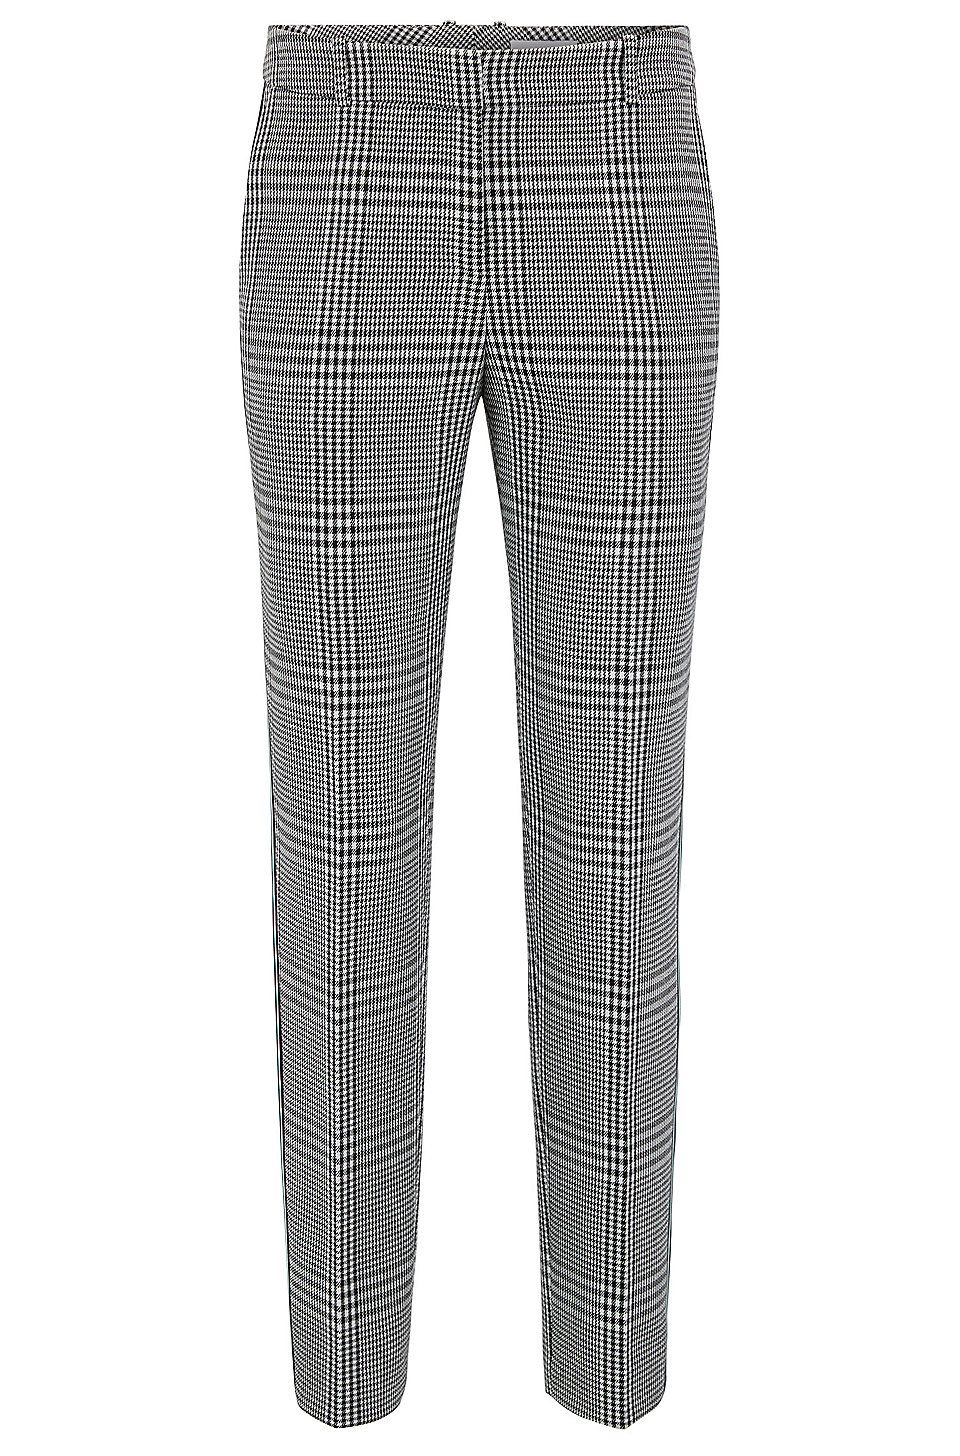 8dee2a3470 Tapered pants in Glen-check fabric with striped taping in 2019 ...